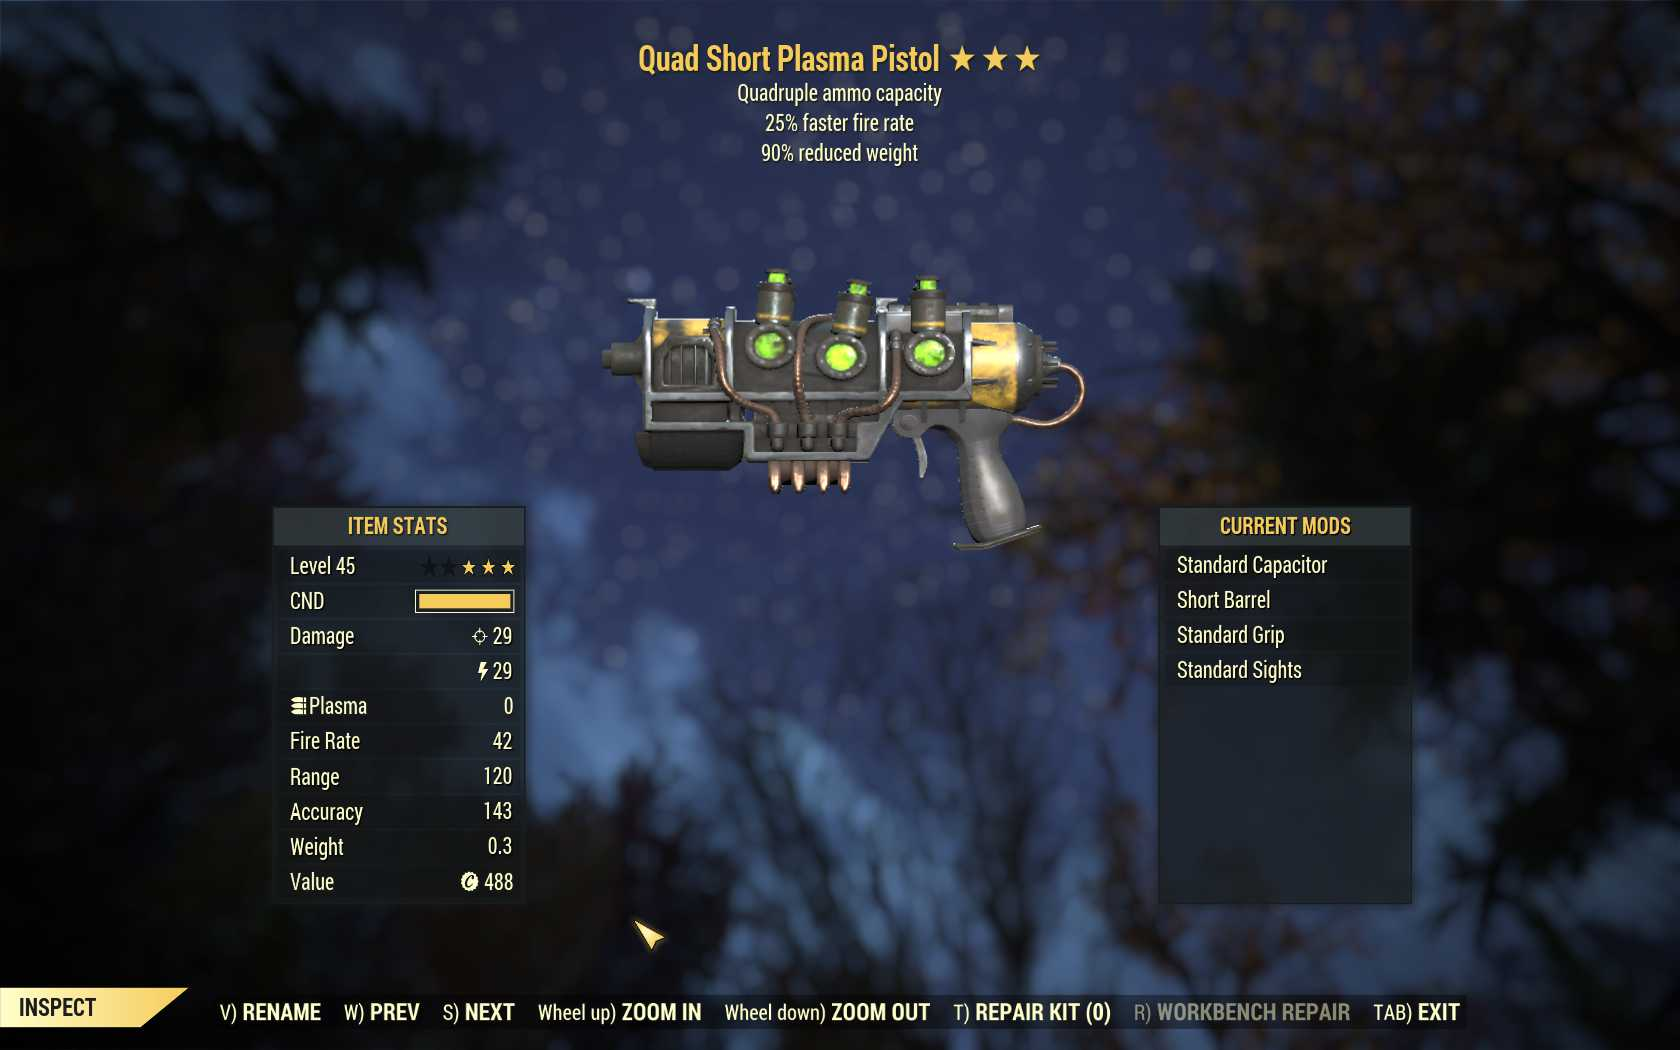 Quad Plasma rifle (25% faster fire rate, 90% reduced weight)